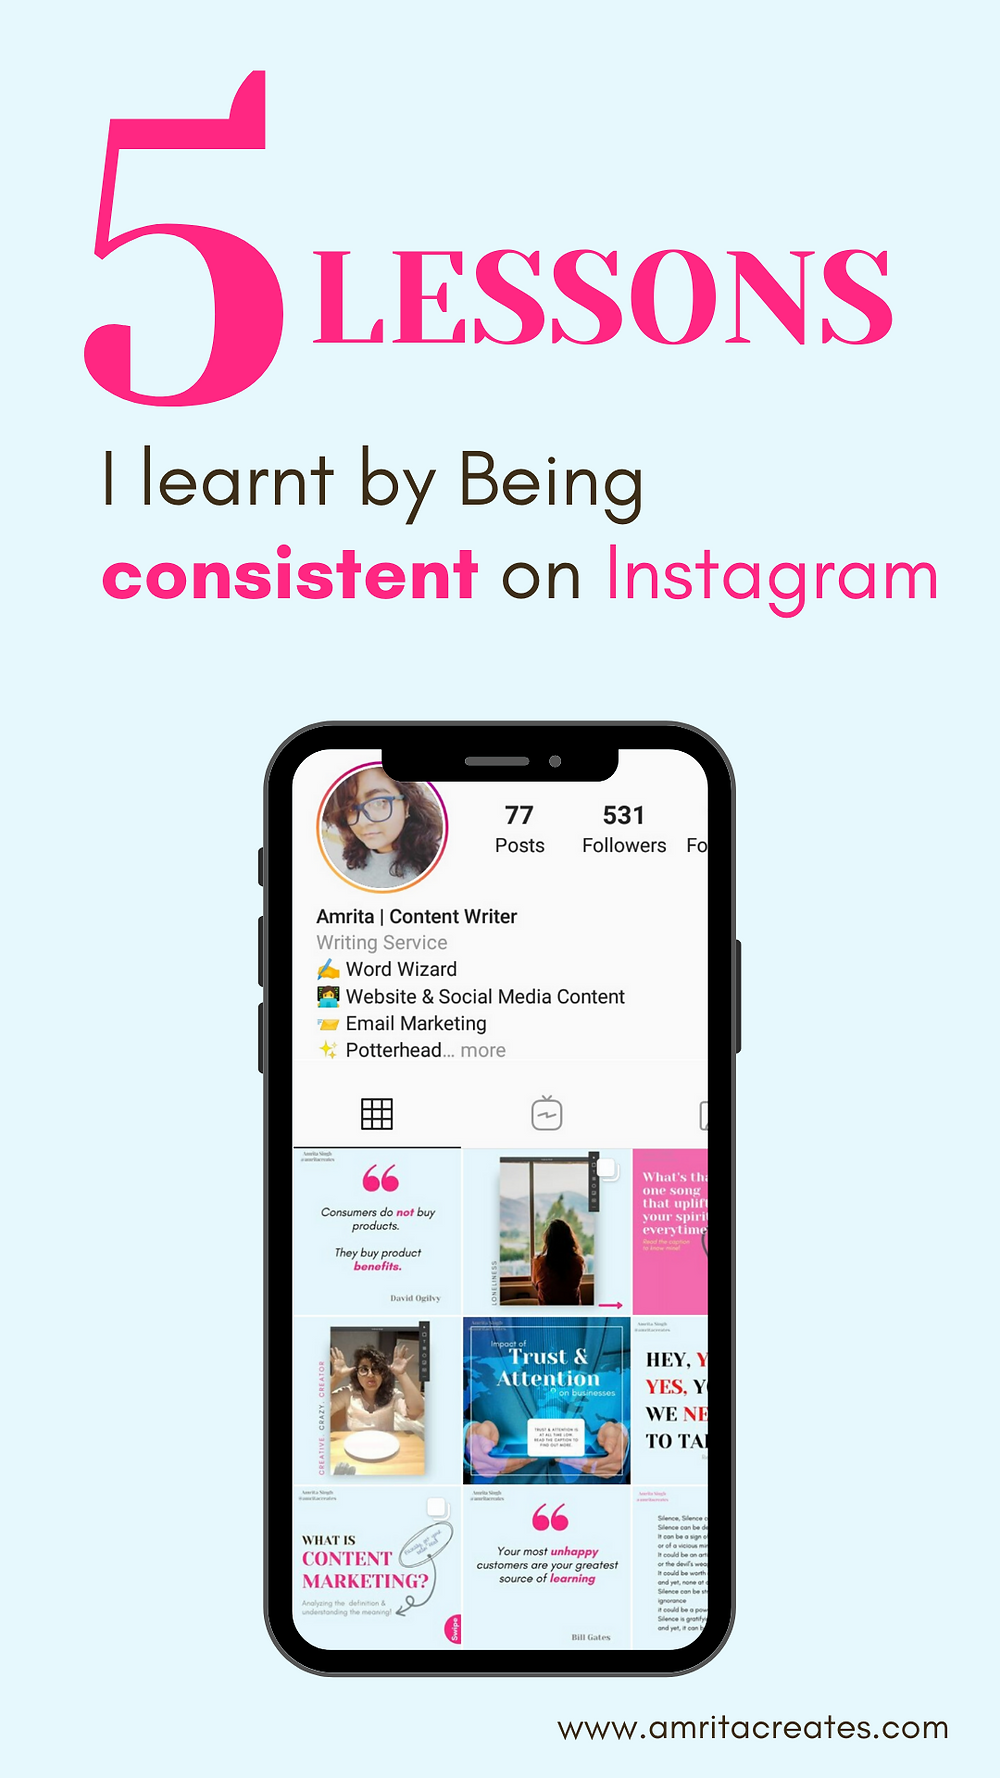 5 lessons Amroita Creates learnt by being consistent on Instagram